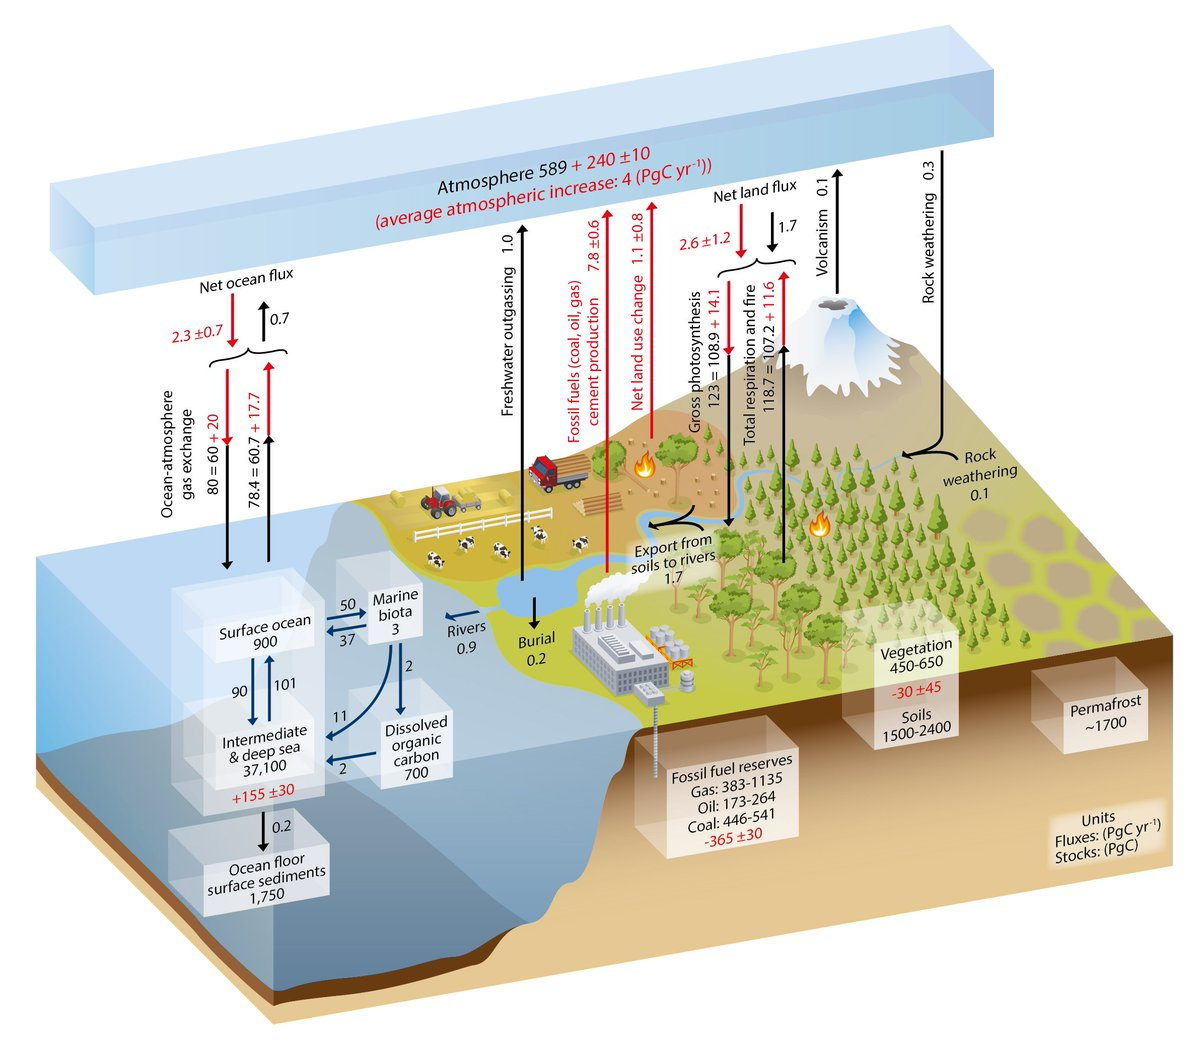 hight resolution of  to share the ipcc ar5 carbon cycle diagram showing the stocks and fluxes of carbon in the atmosphere biosphere and oceans numbers in red indicate the